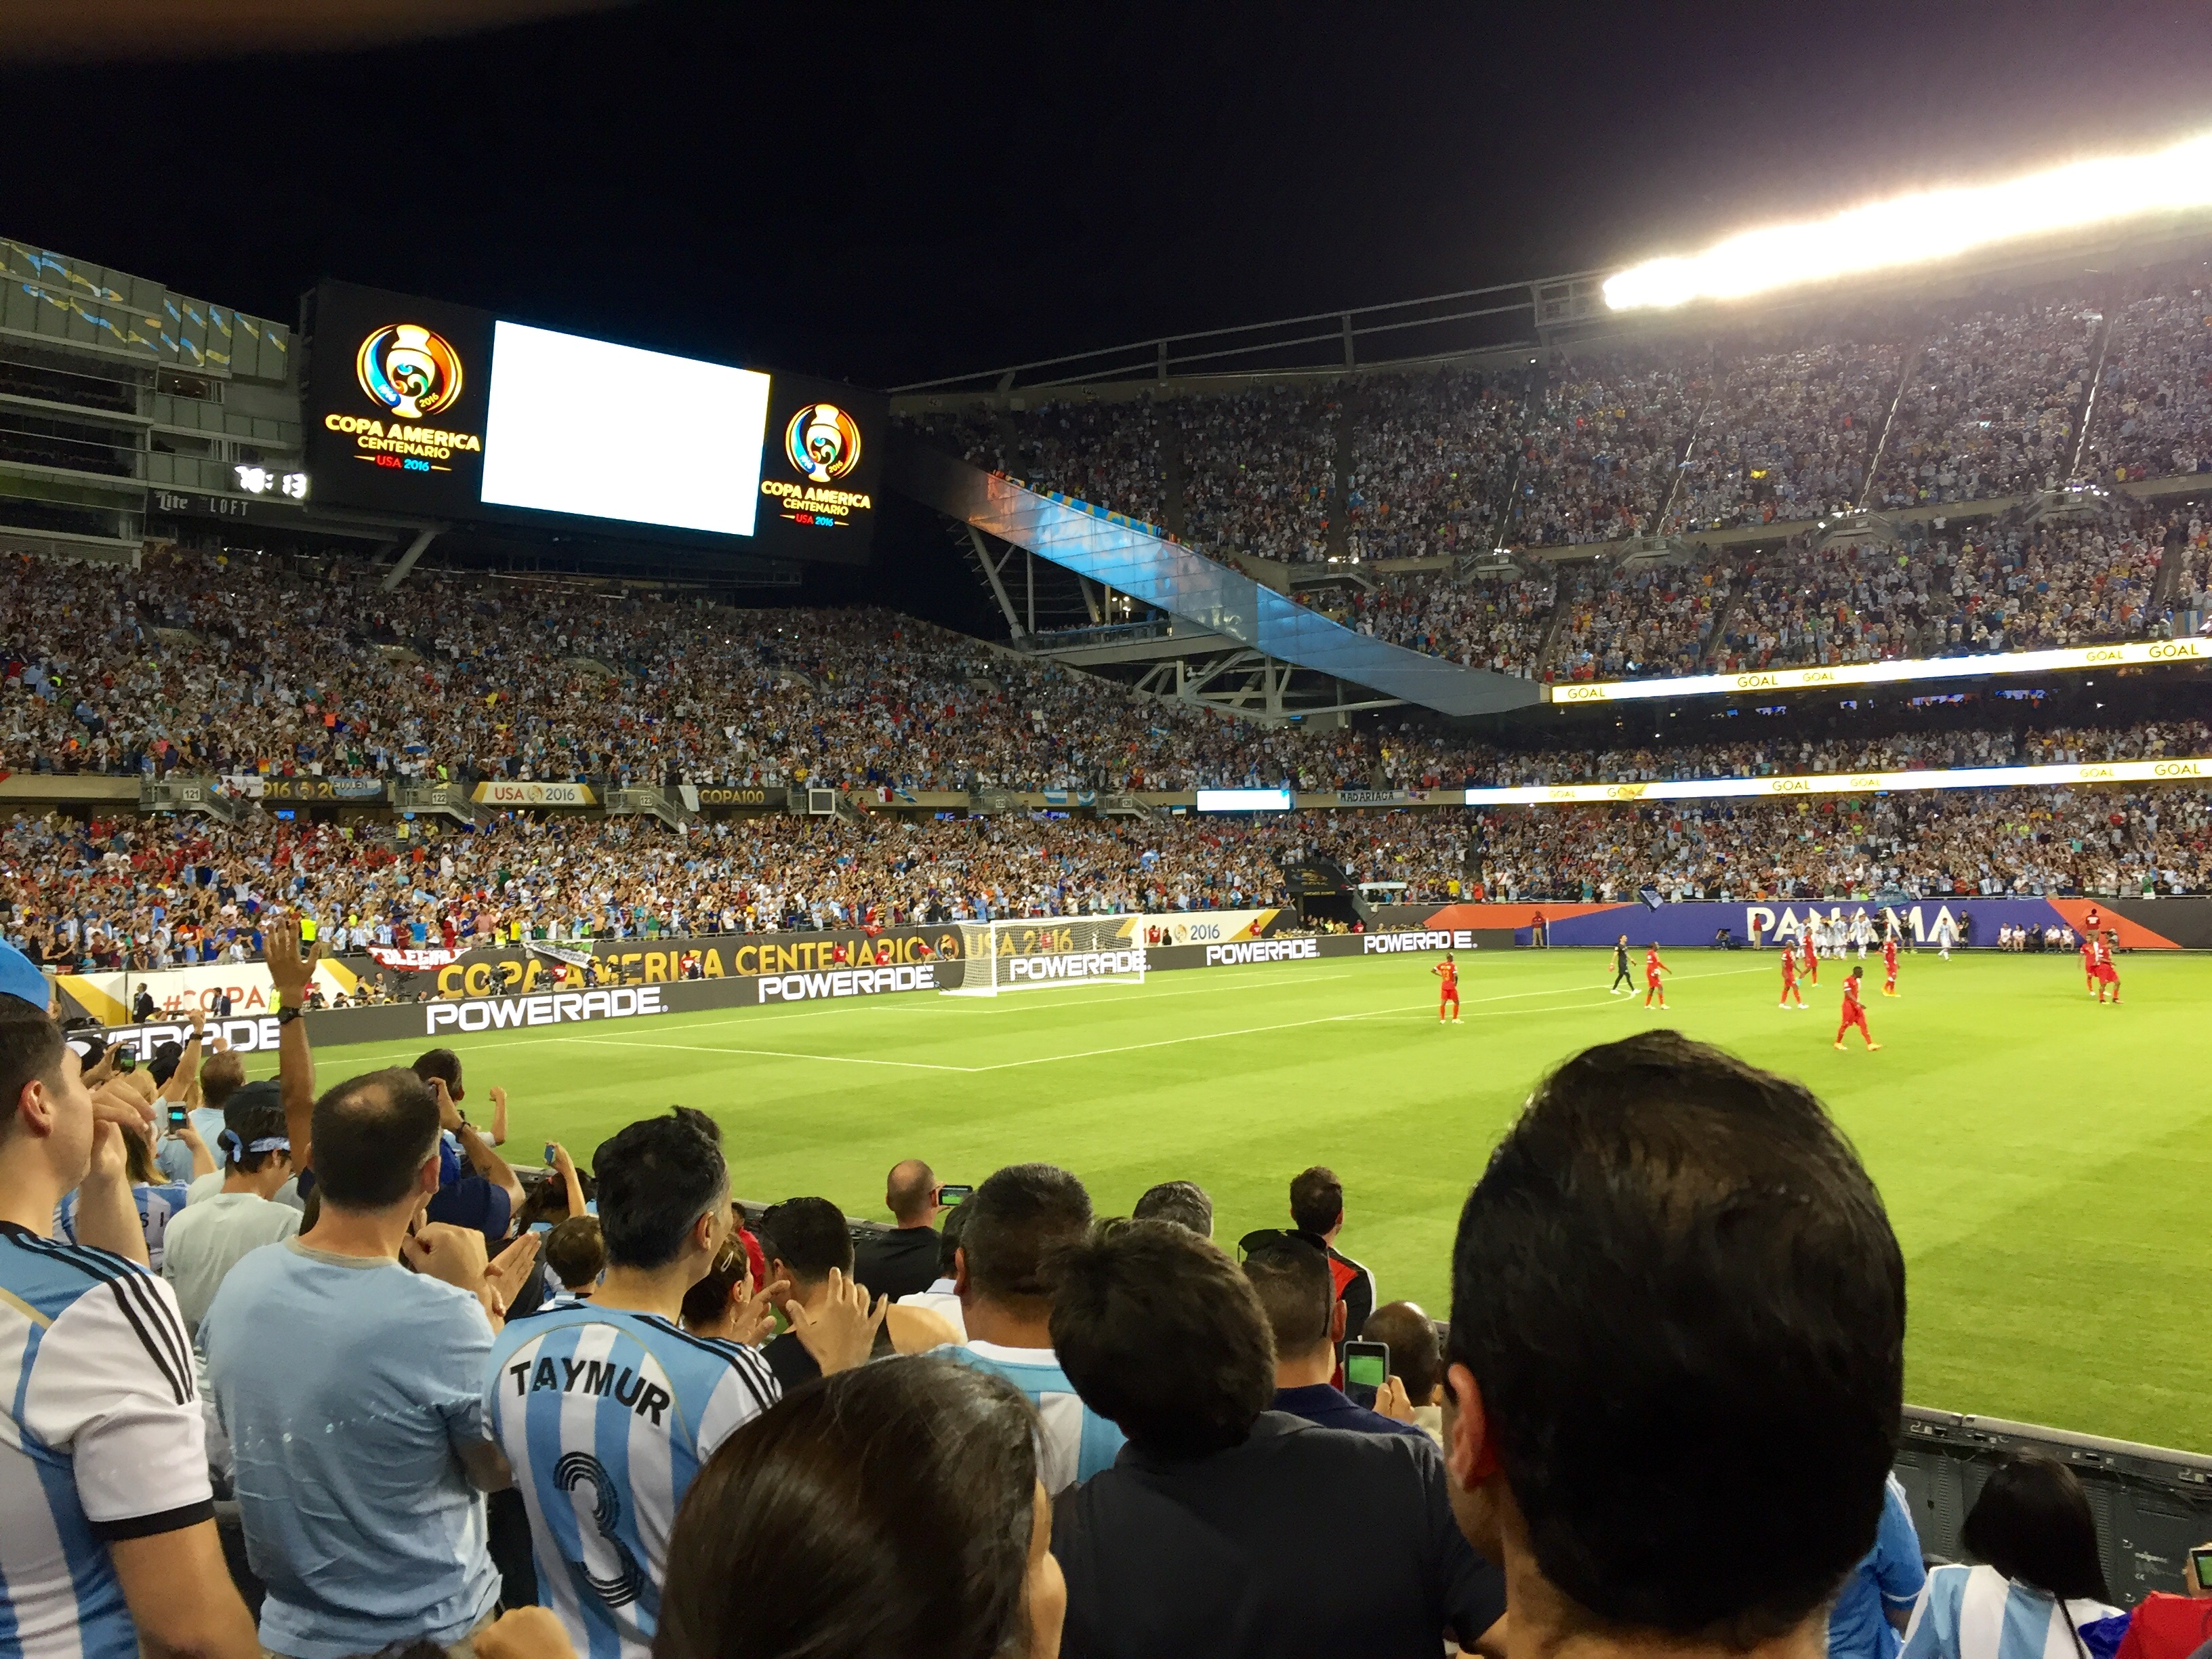 Copa America at Soldier Field